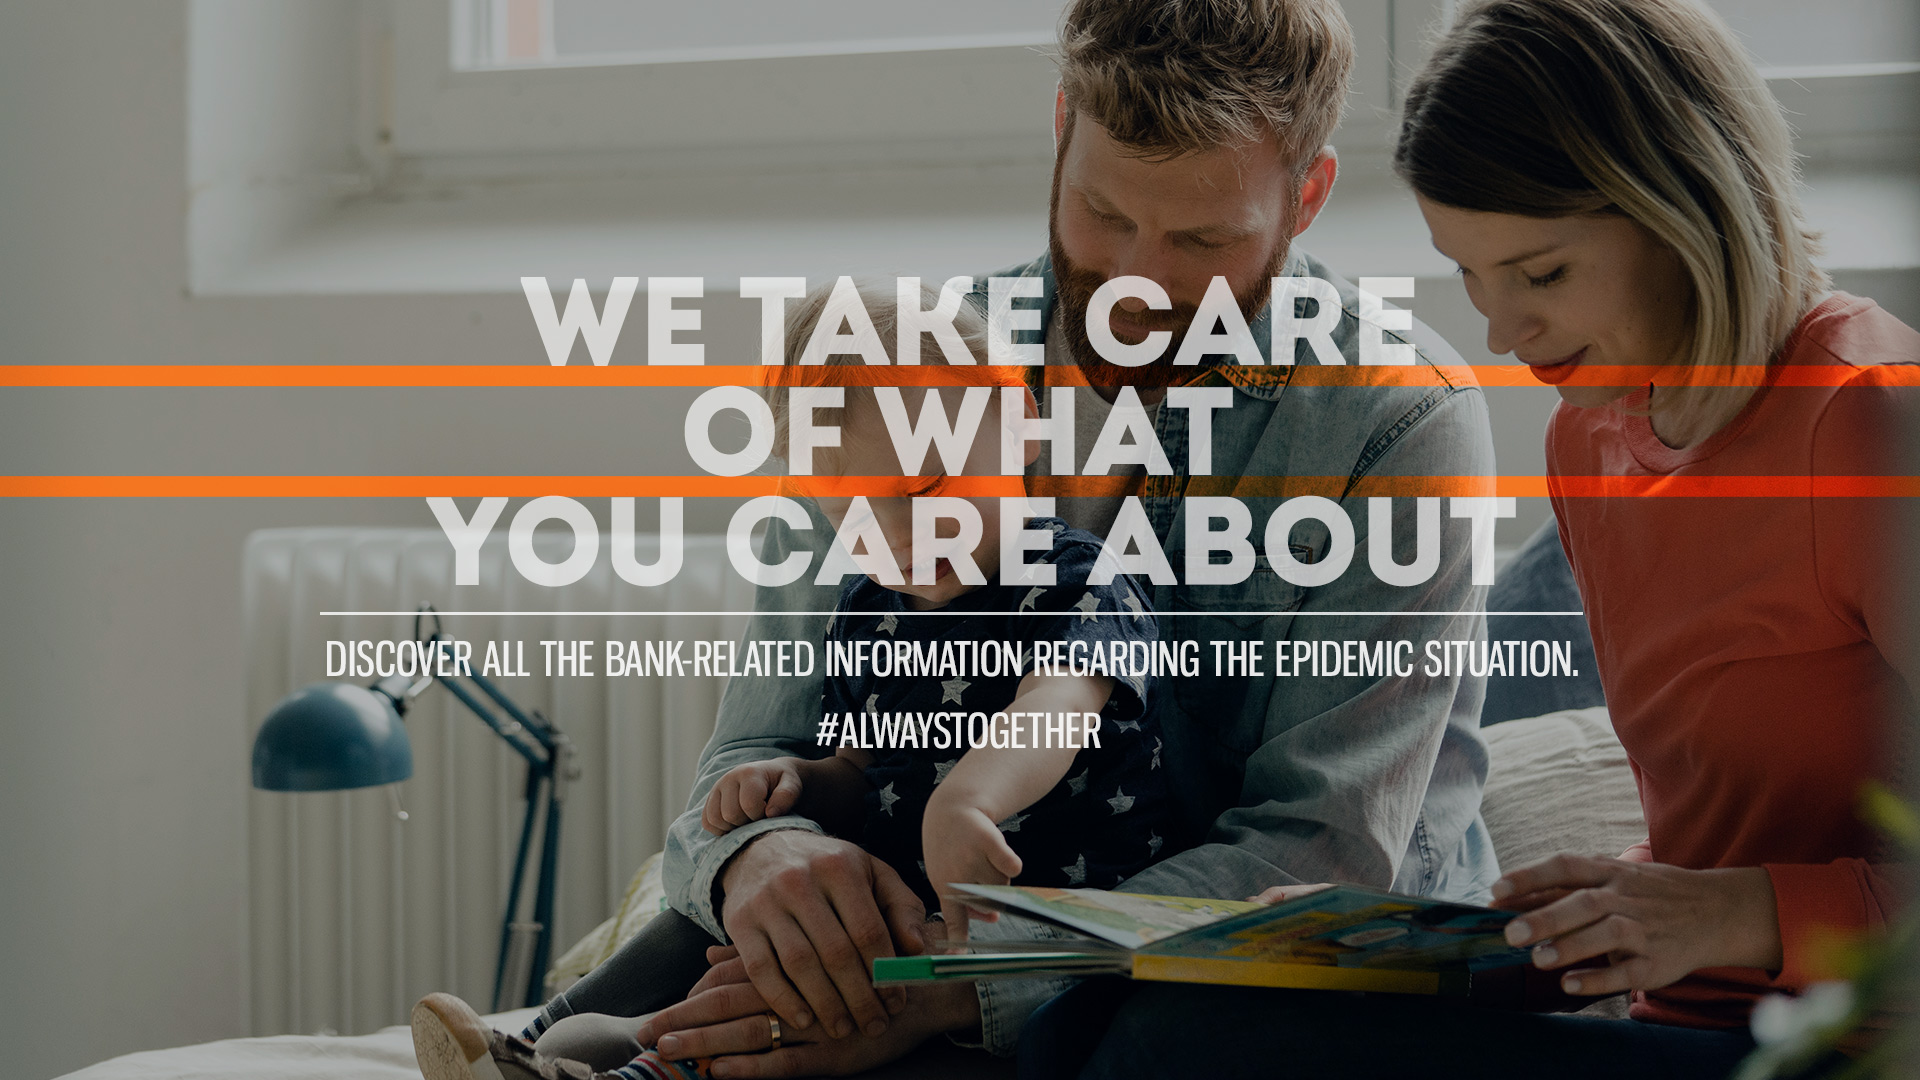 We take care of what you care about. Discover all bank-related information regarding the situation.